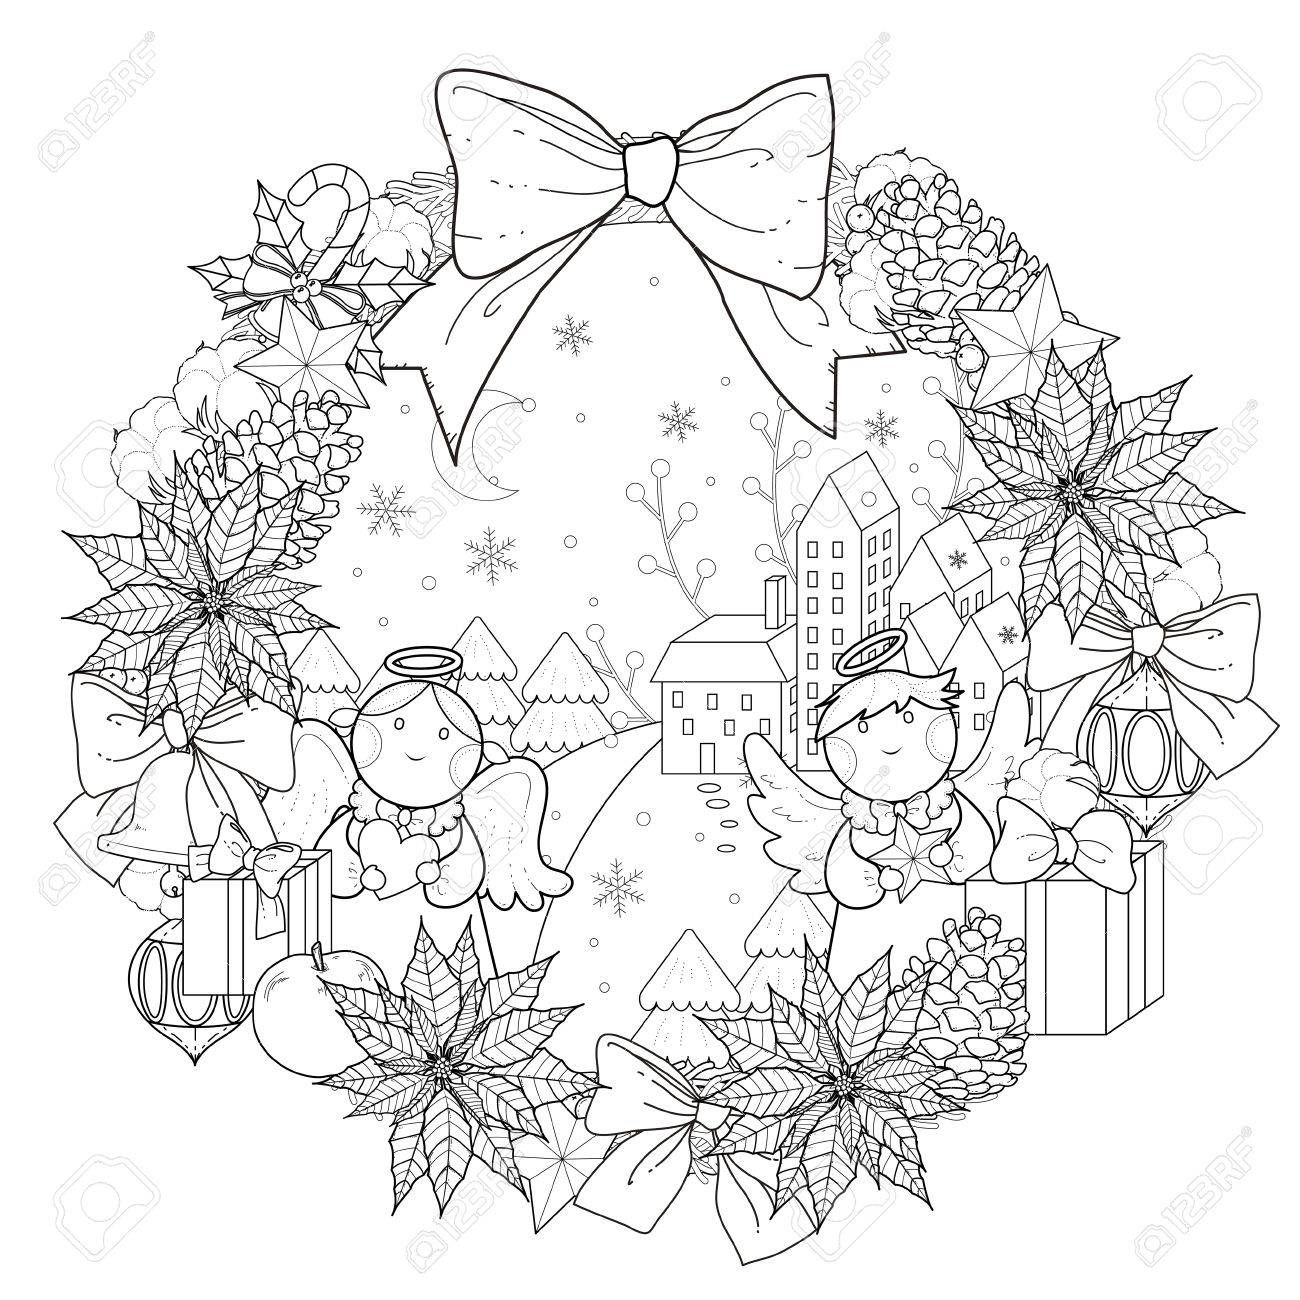 Christmas Wreath Coloring Pages For Adults With Page Decorations In Exquisite Line